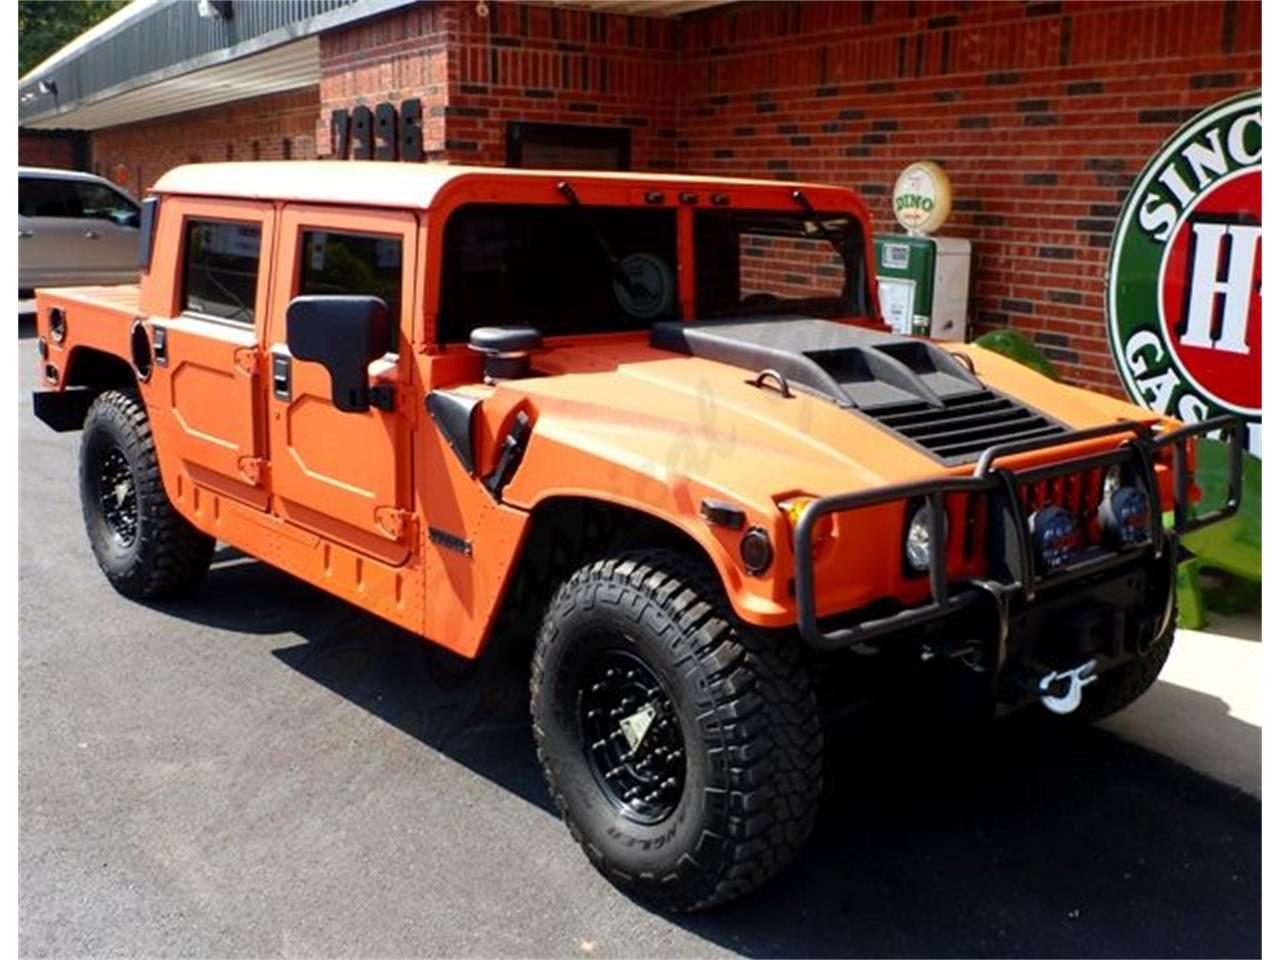 For Sale: 133 Hummer H13 in Arlington, Texas | hummer h1 for sale in texas